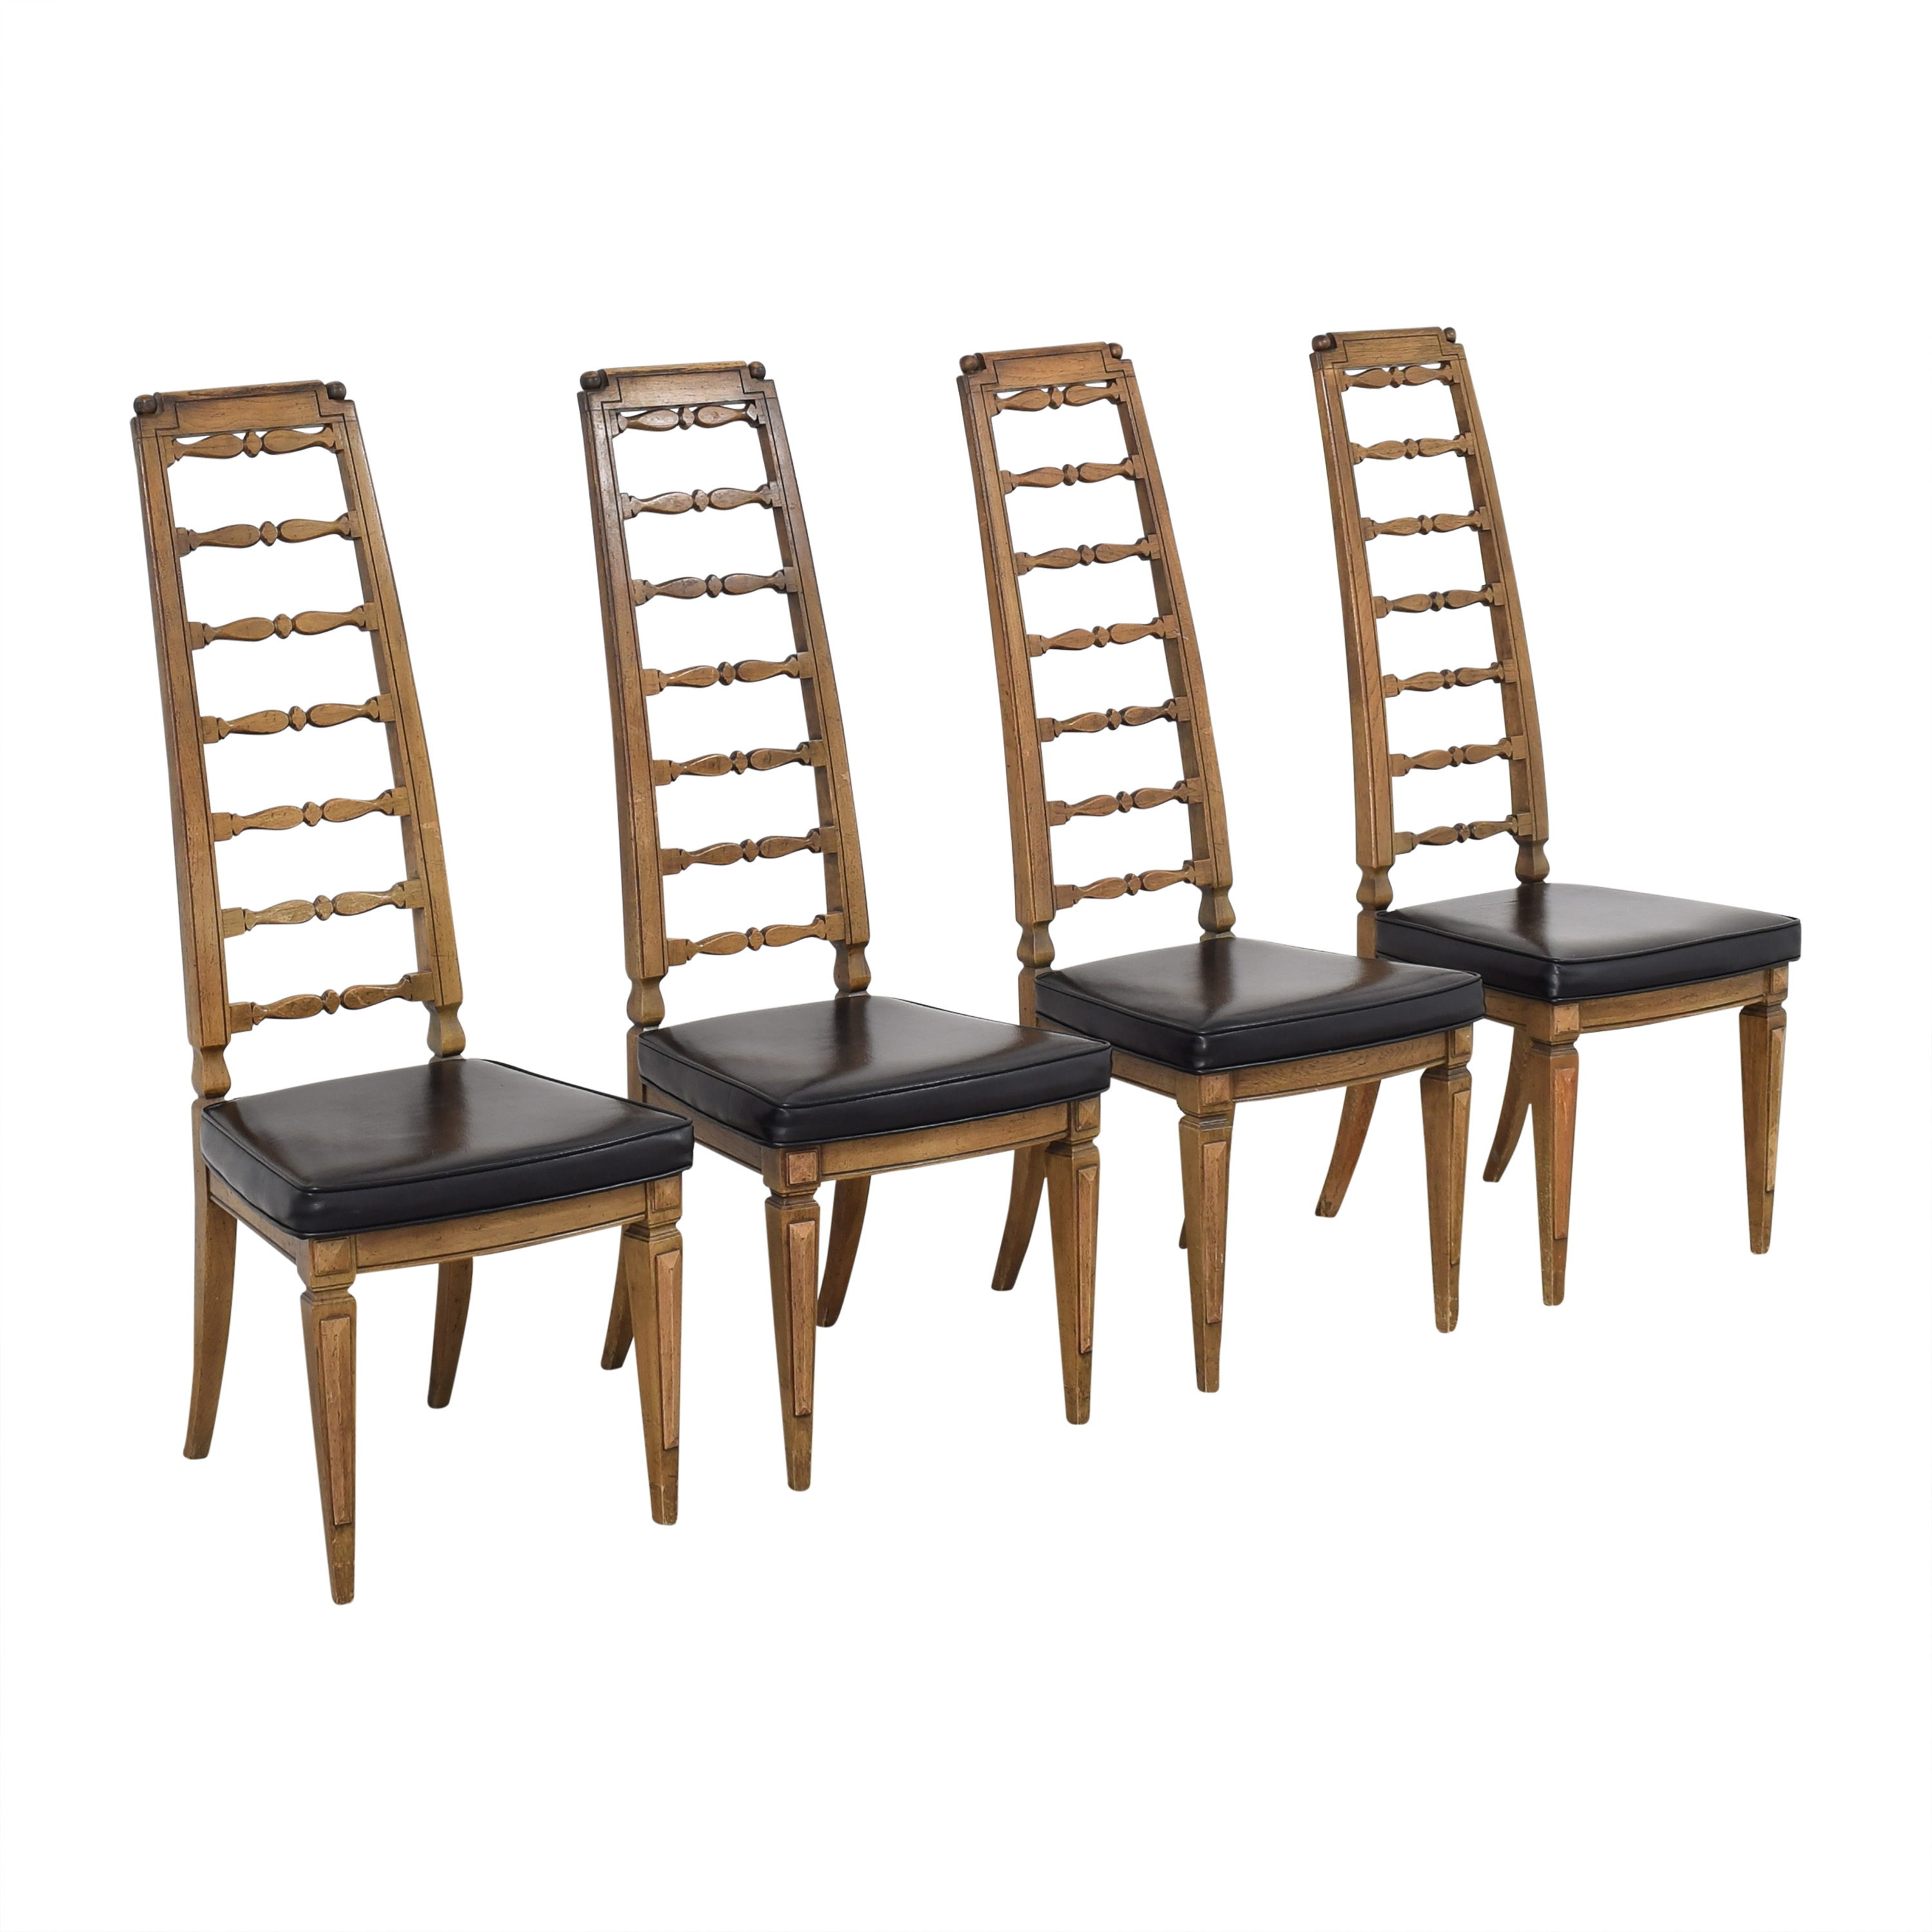 buy Thomasville Thomasville Tall Ladder Back Dining Chairs online